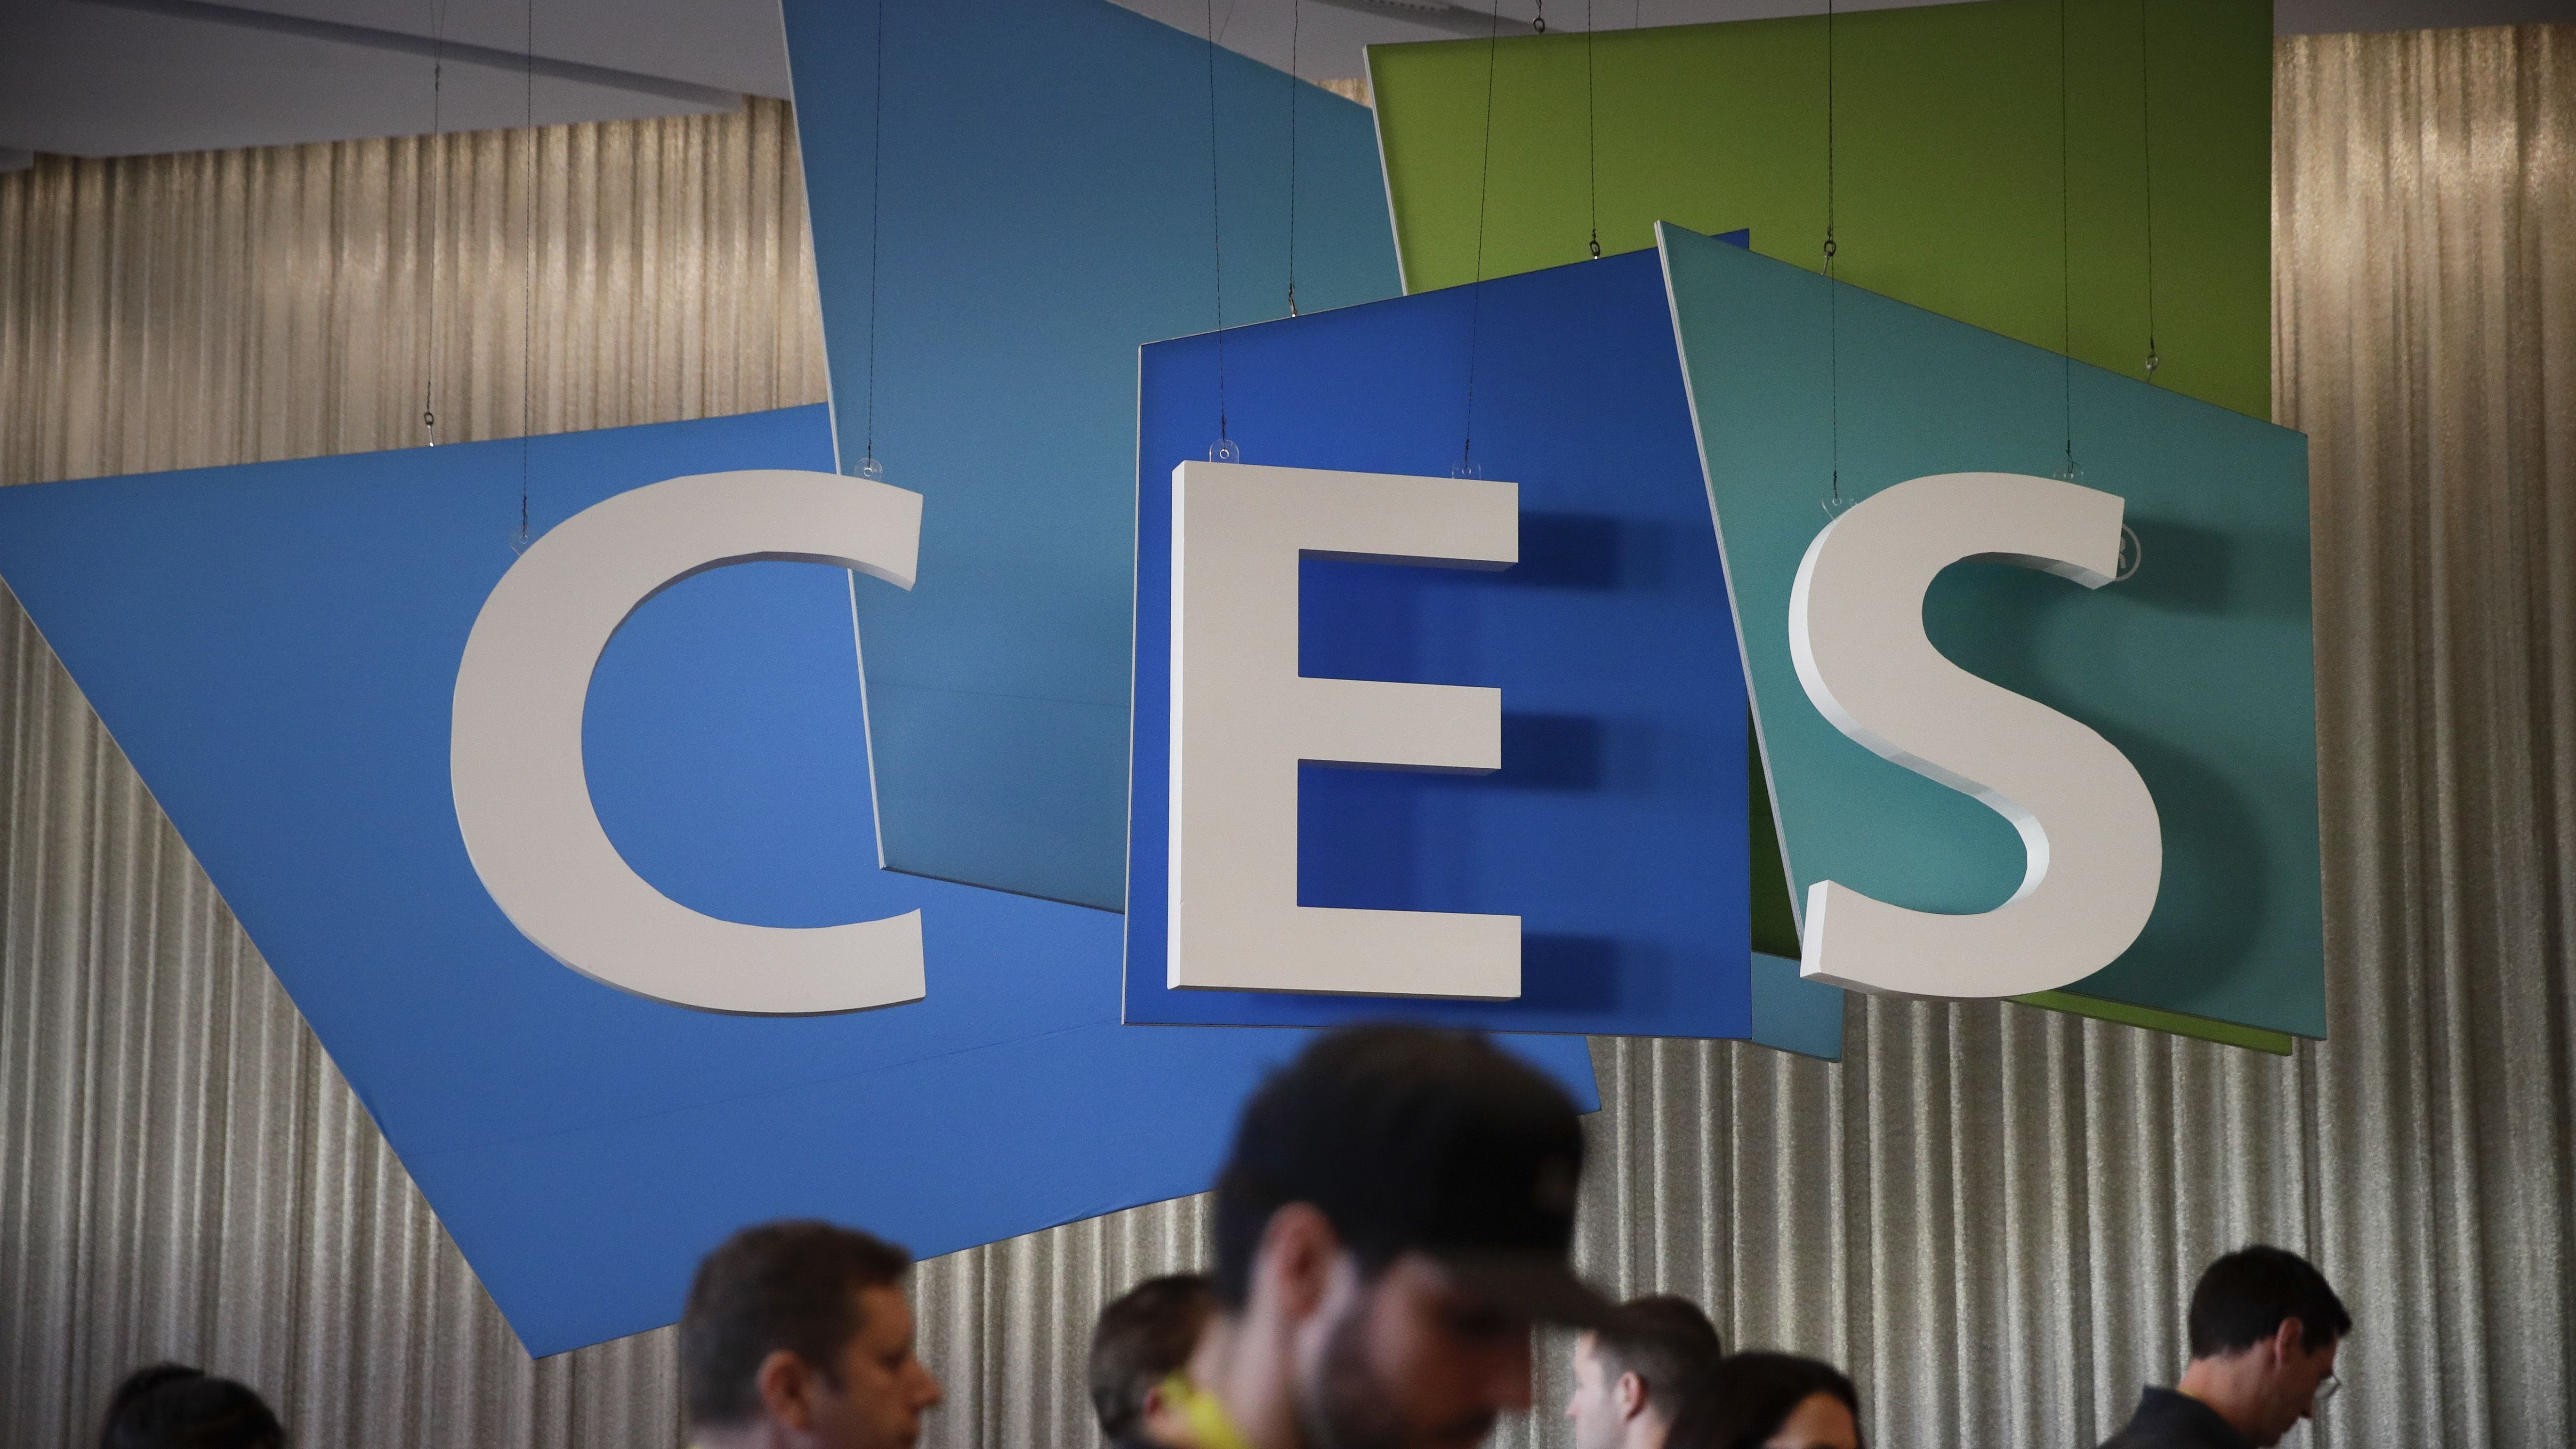 Power Outage Brings CES to a Standstill